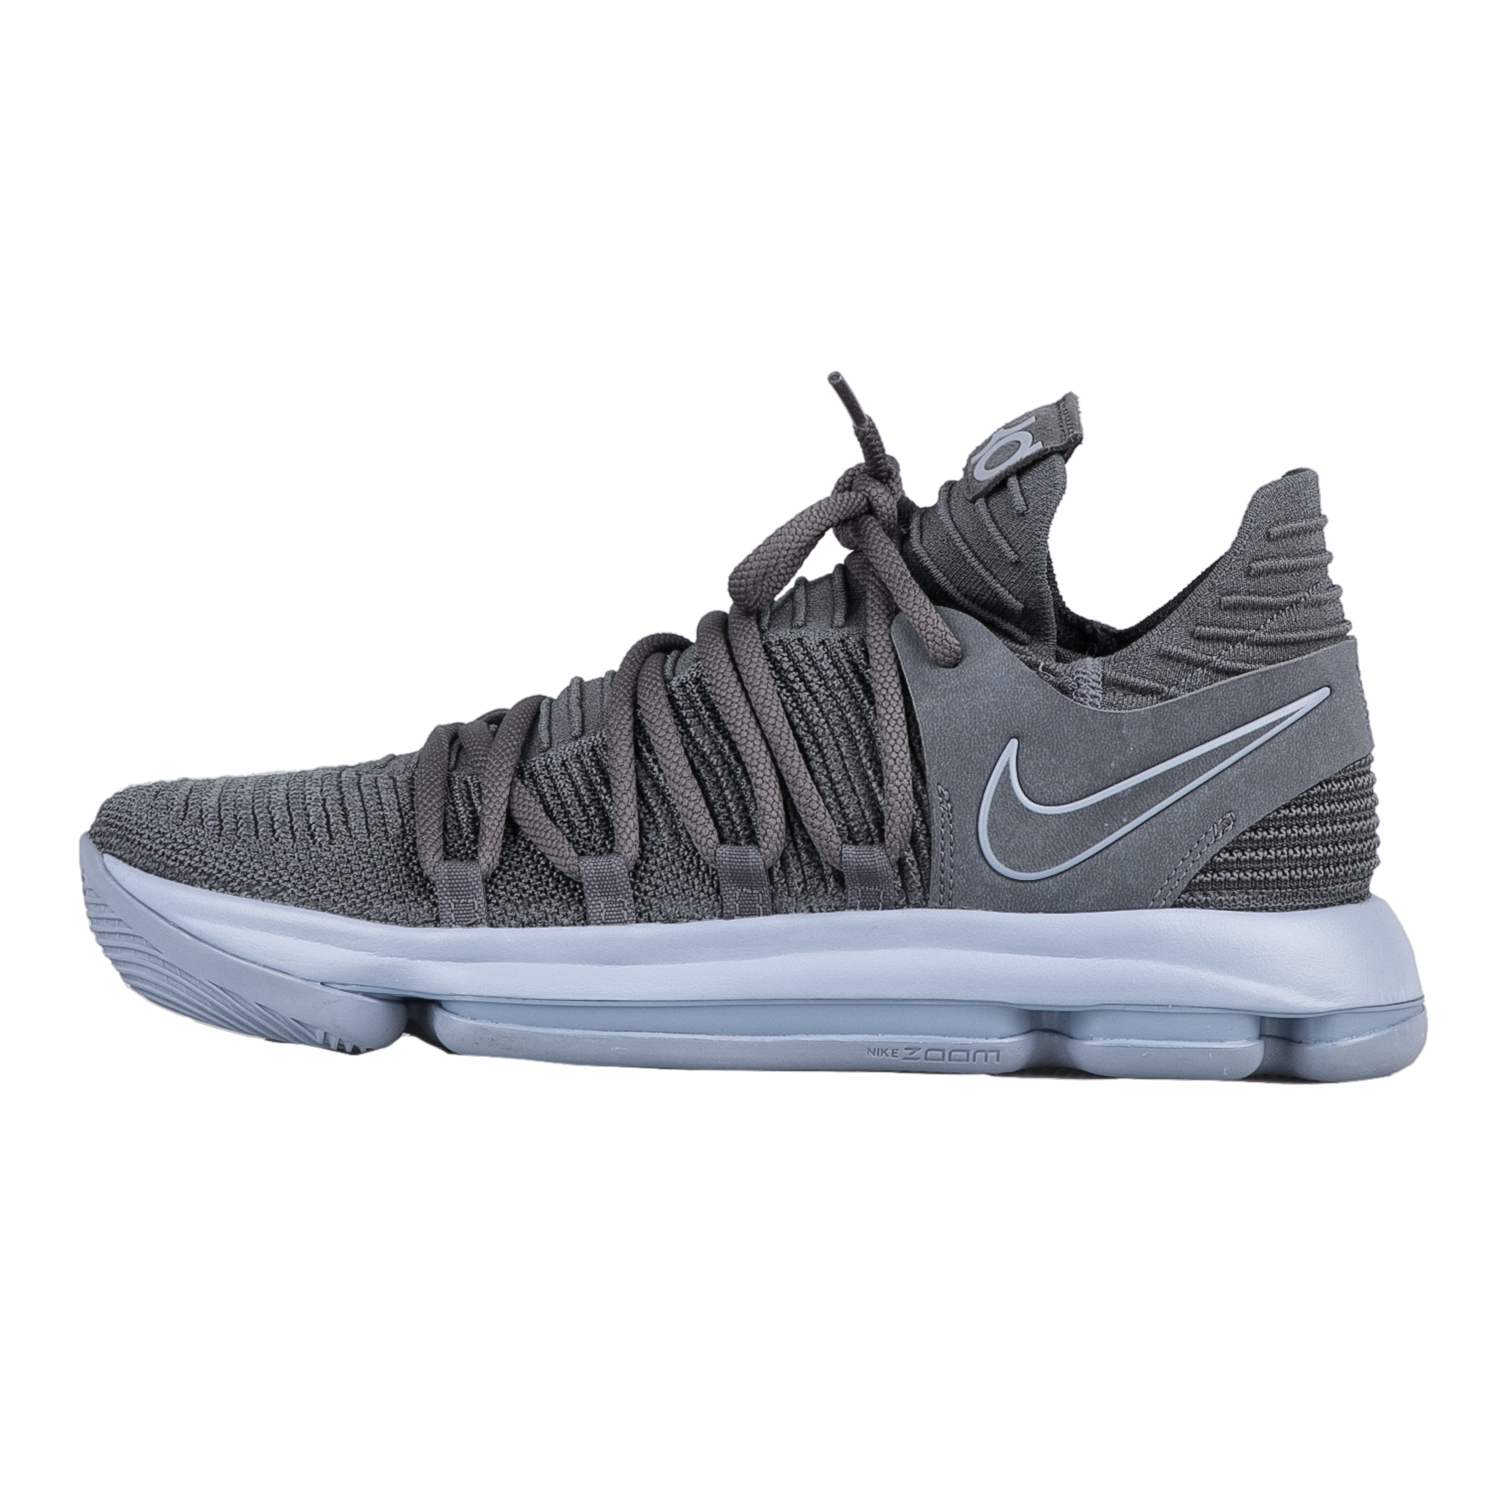 NIKE – Ανδρικά παπούτσα μπάσκετ NIKE ZOOM KD10 μαύρα